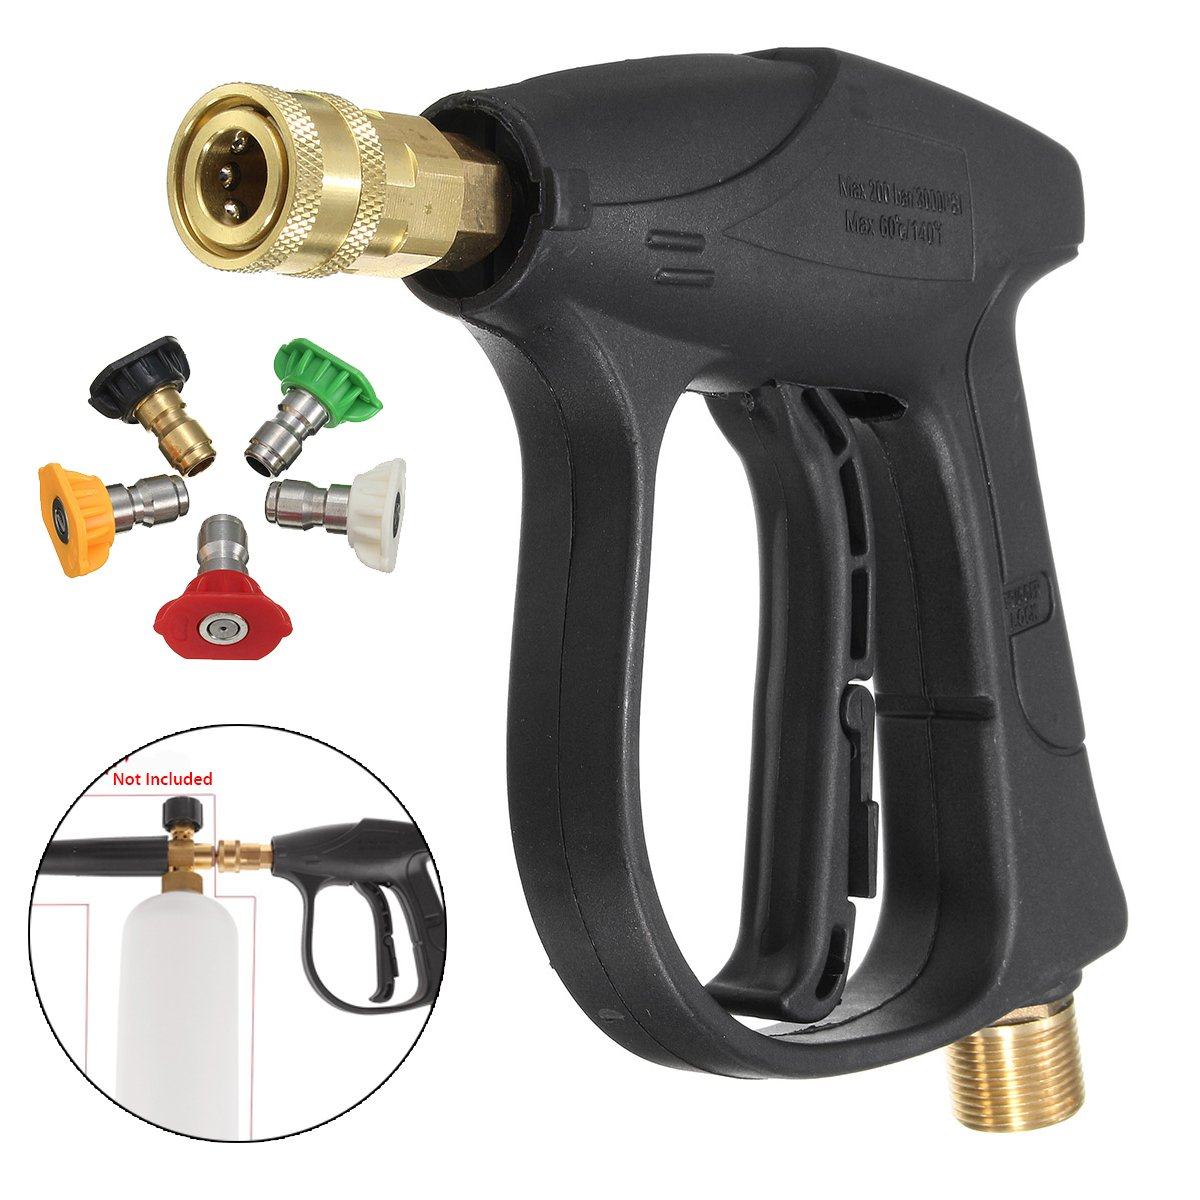 Force Washing Machine - Car Motorcycle Bicycle 200bar 3000psi Pressure Washer Gun 5 Nozzle - Overflowing School Pinched Luxuriously Upper Blackjack Altissimo Sharp Falsetto - 1PCs by Unknown